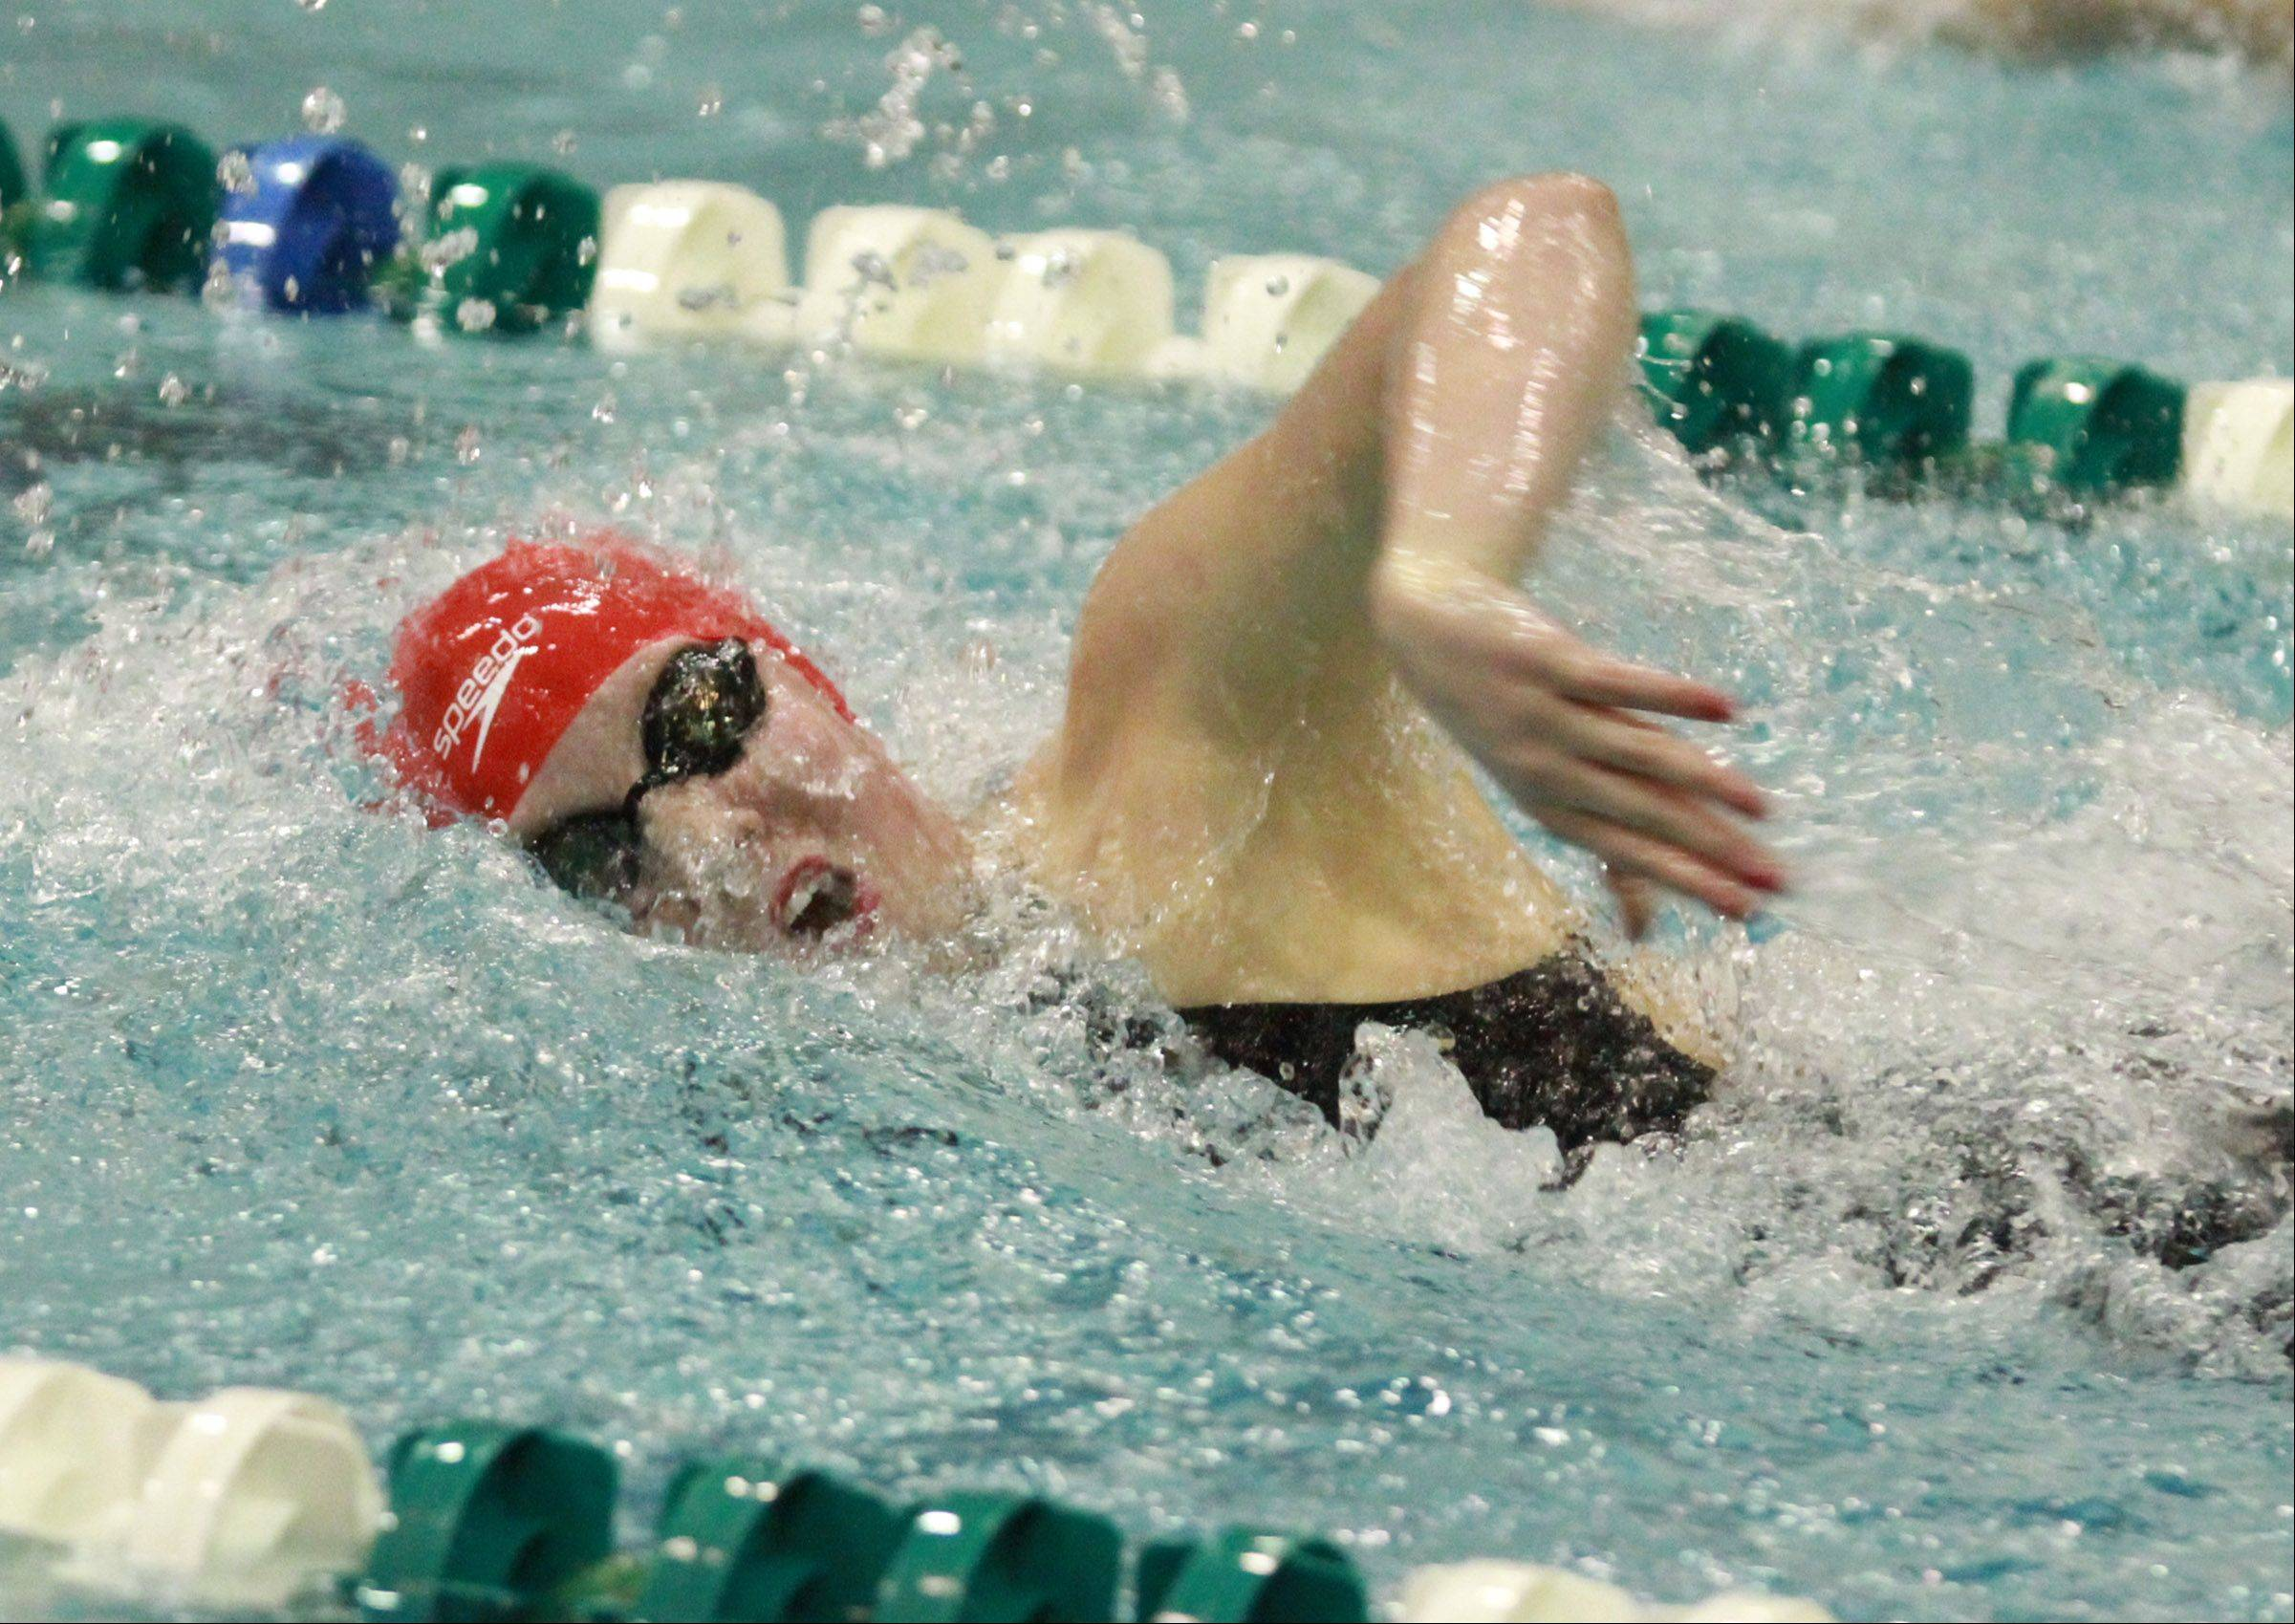 Mundelein's Erin Falconer placed second in the 200 yard free style at the girls state swimming finals on Saturday in Winnetka.